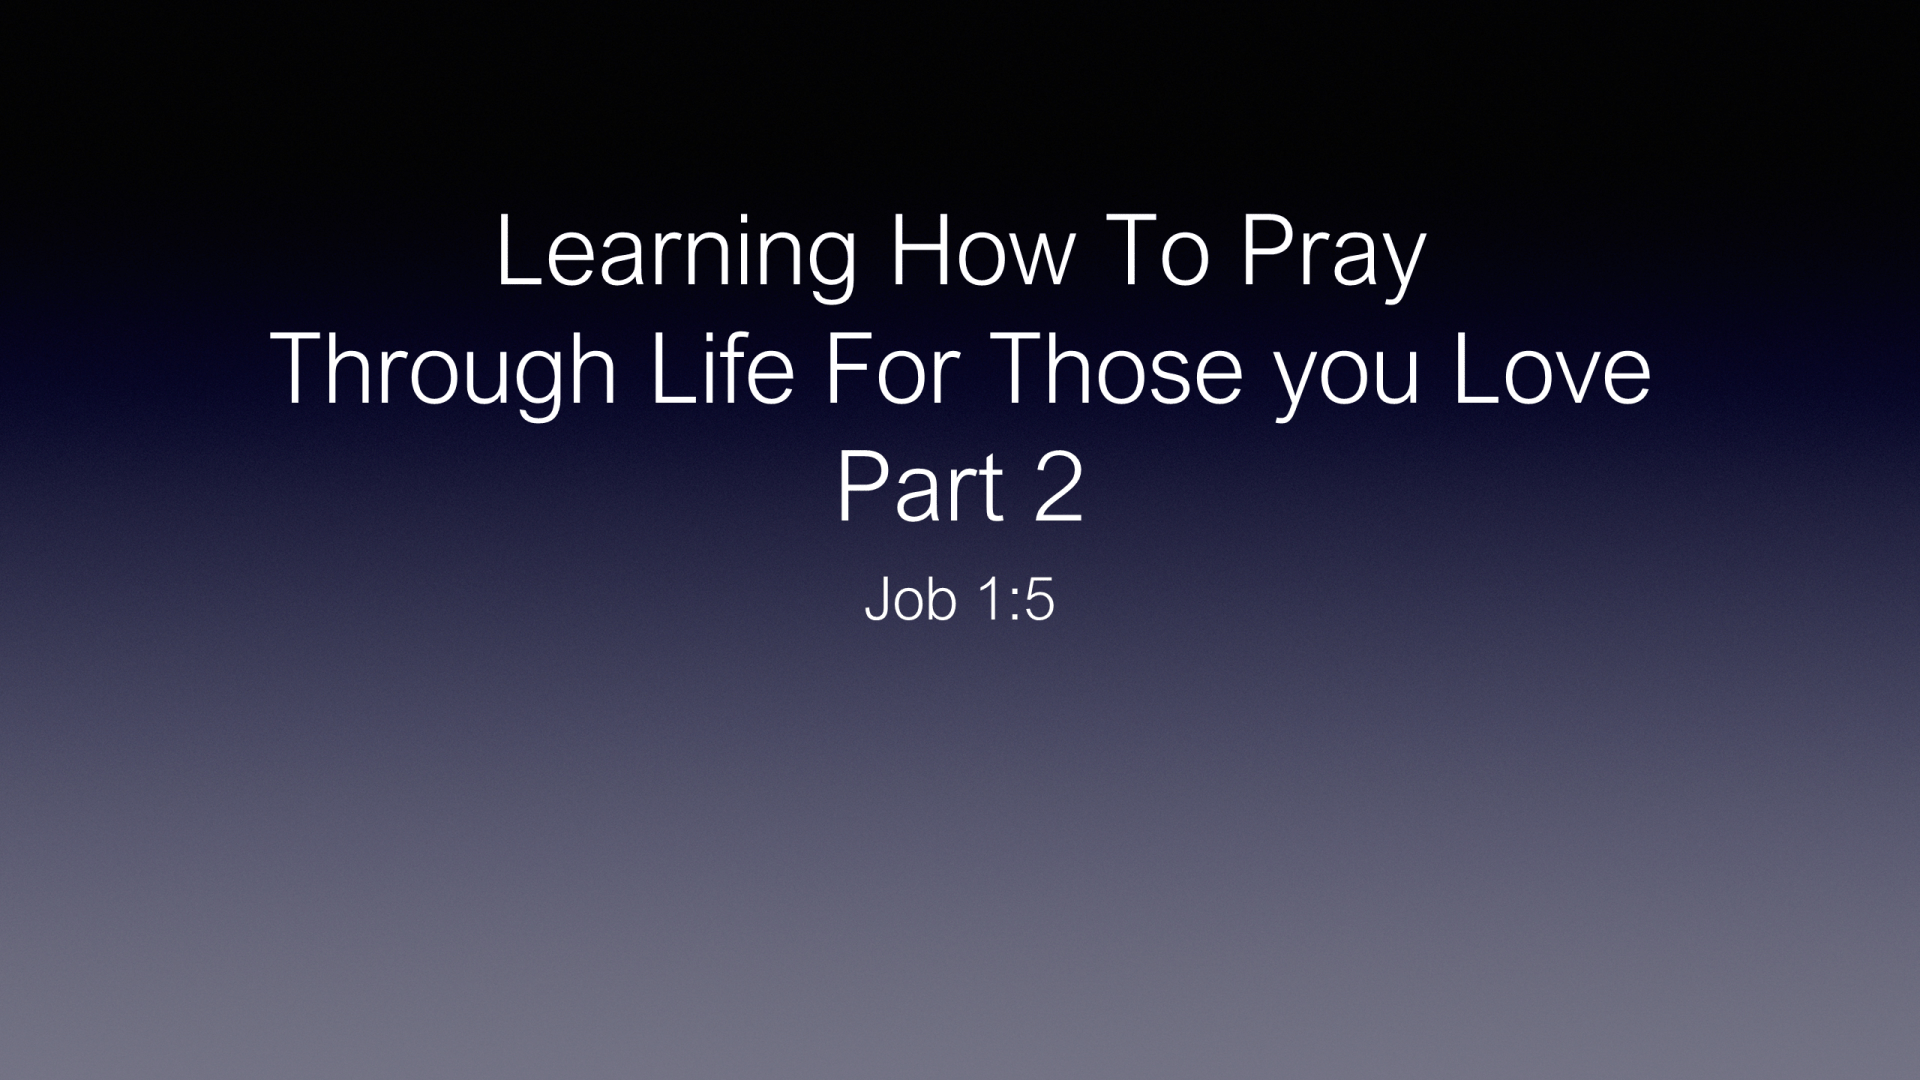 COP-09 - How to Pray for Those We Love Part 2 - Praying for Integrity in Their Personal Lives (1)